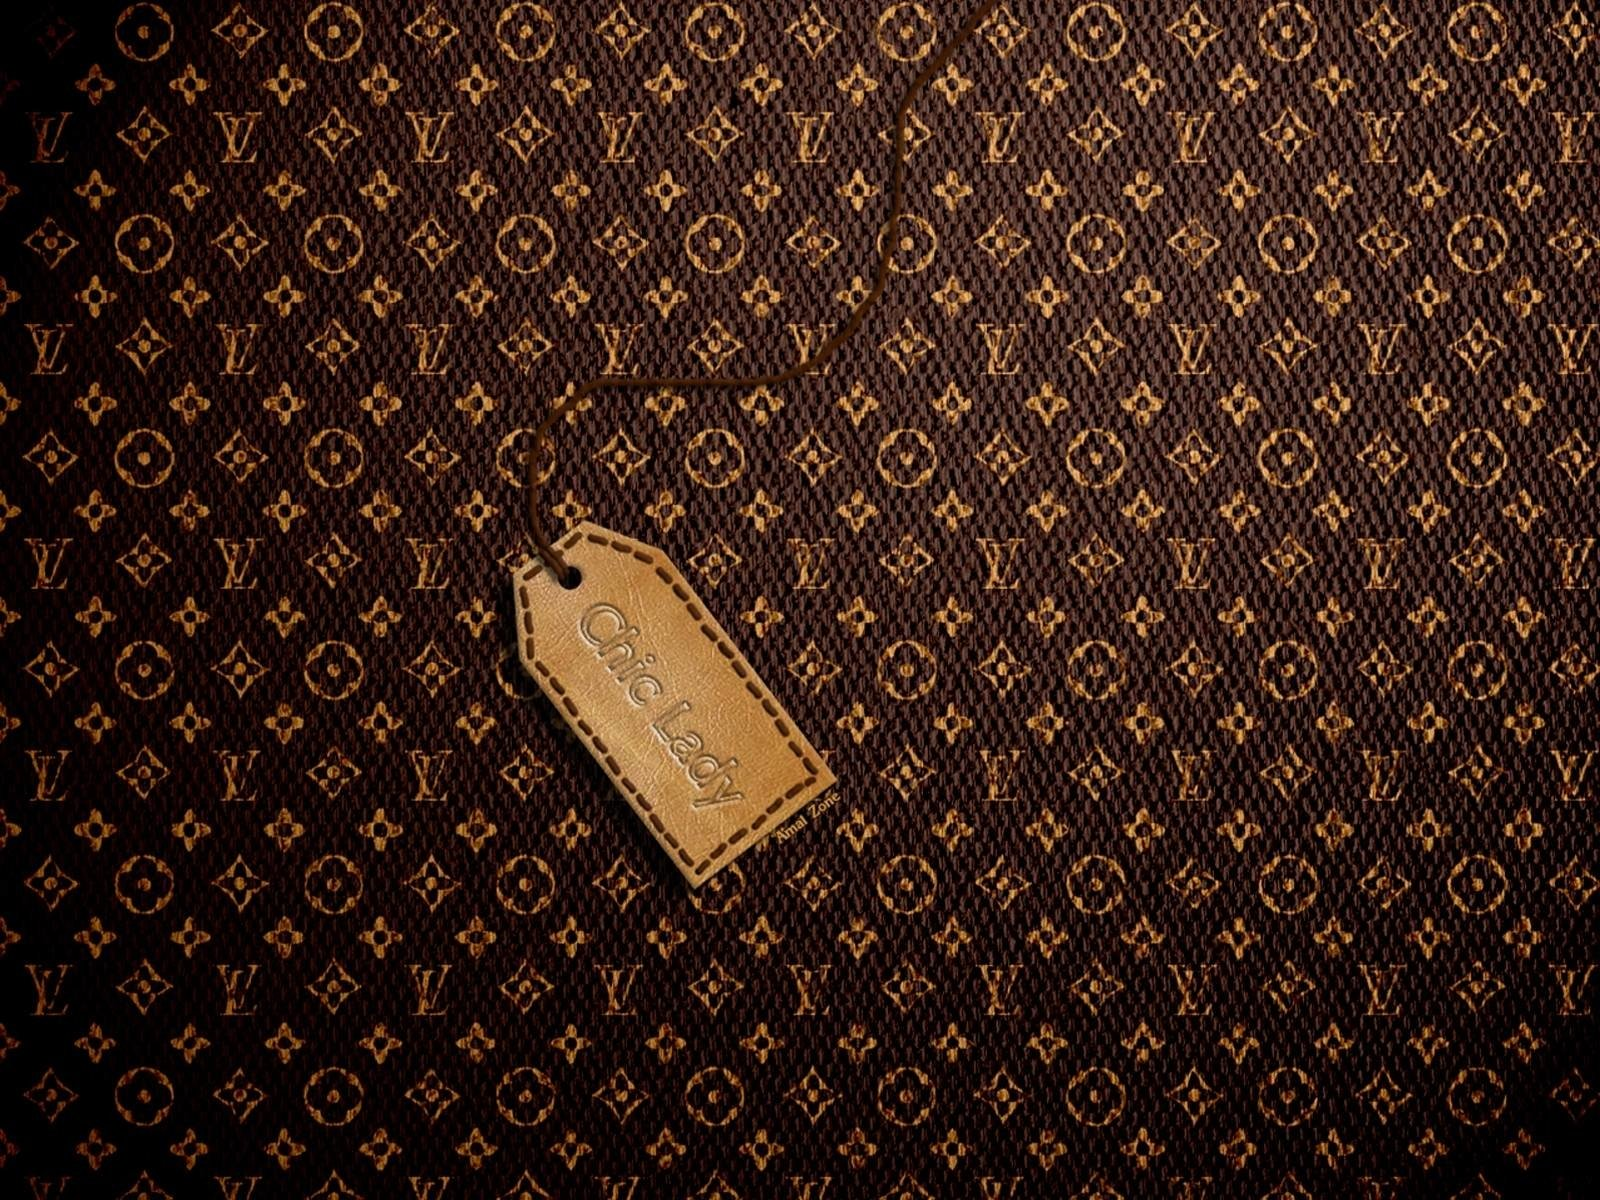 Beautiful Wallpaper Macbook Louis Vuitton - thumb-1920-820962  2018_467382.jpg